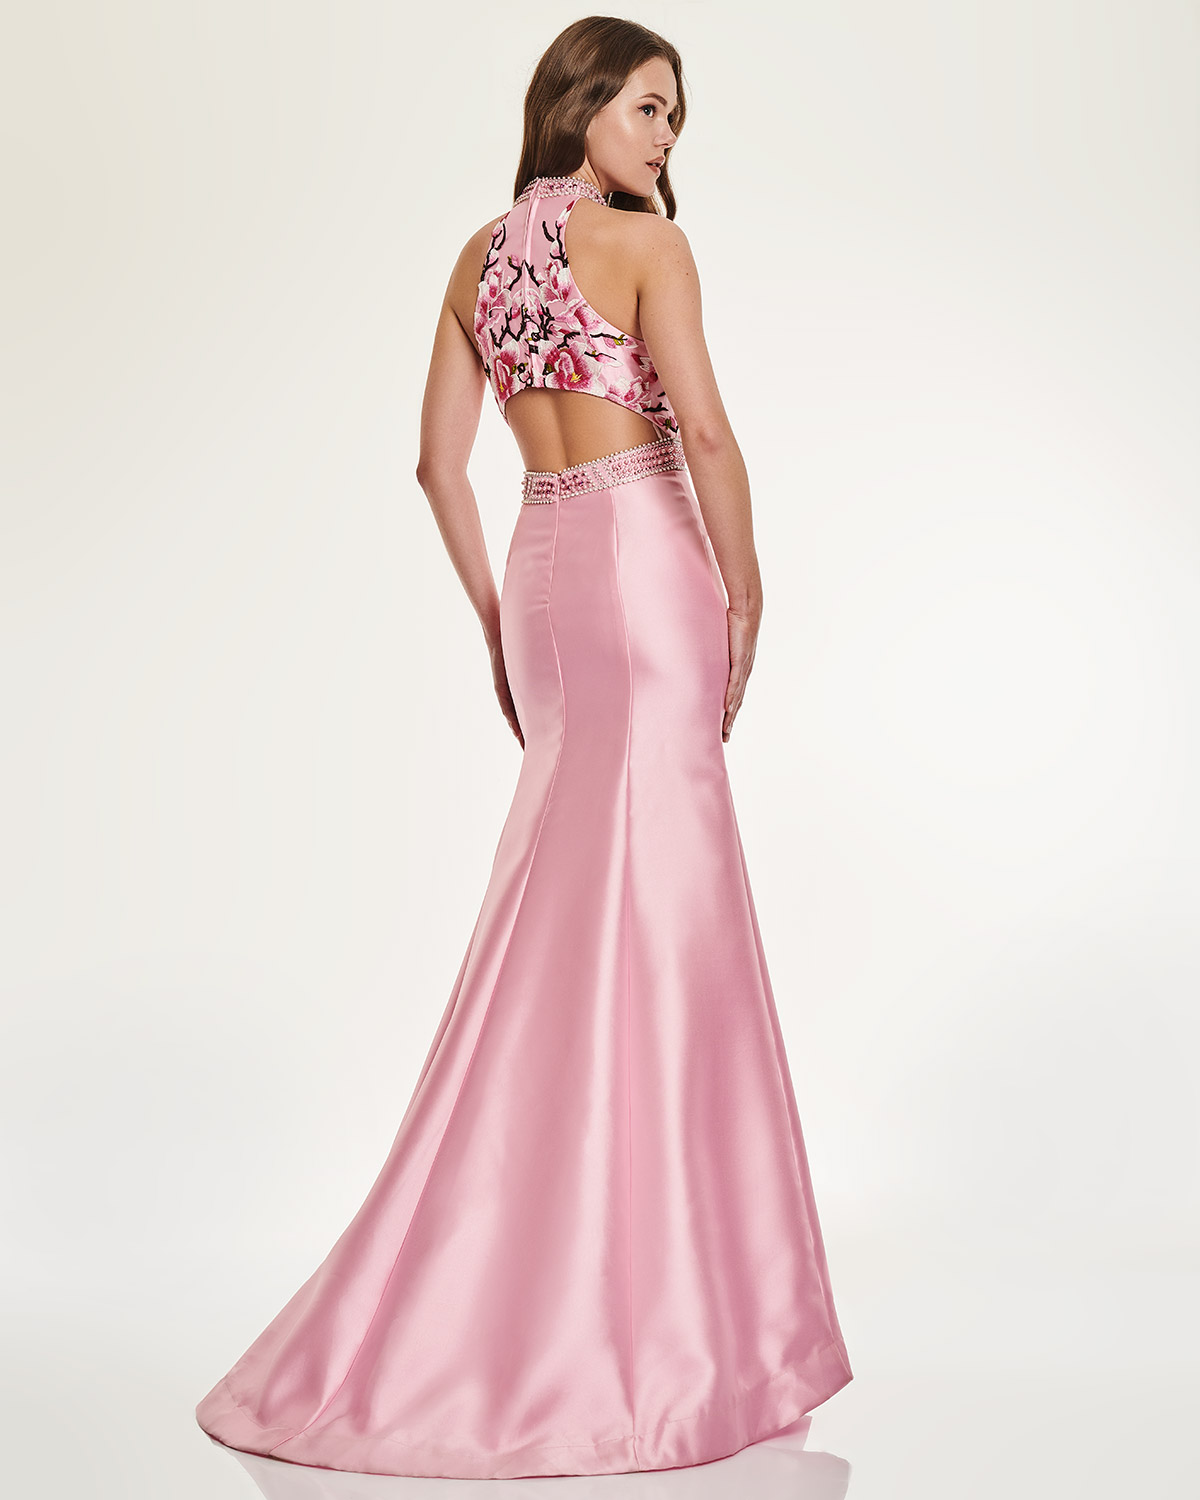 Cocktail Dresses / Long Evening Dress with floral bust and beading